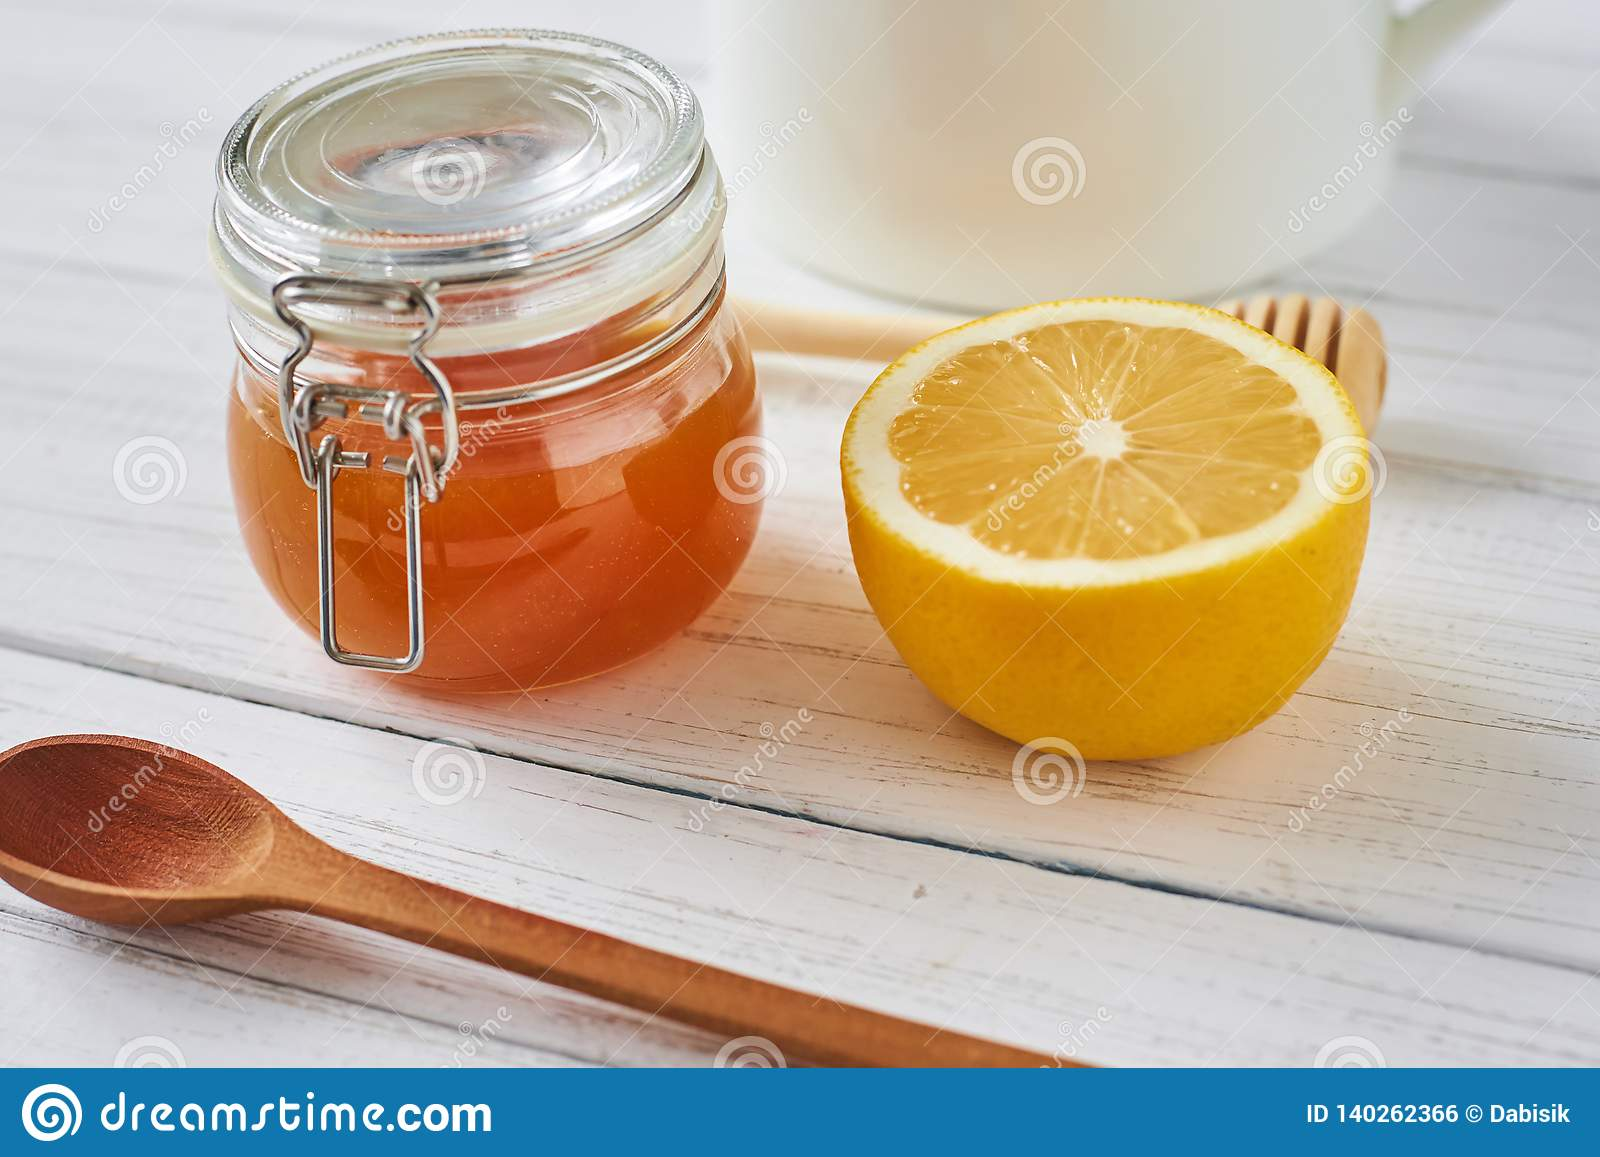 Honey in a glass jar and lemon on white background close up